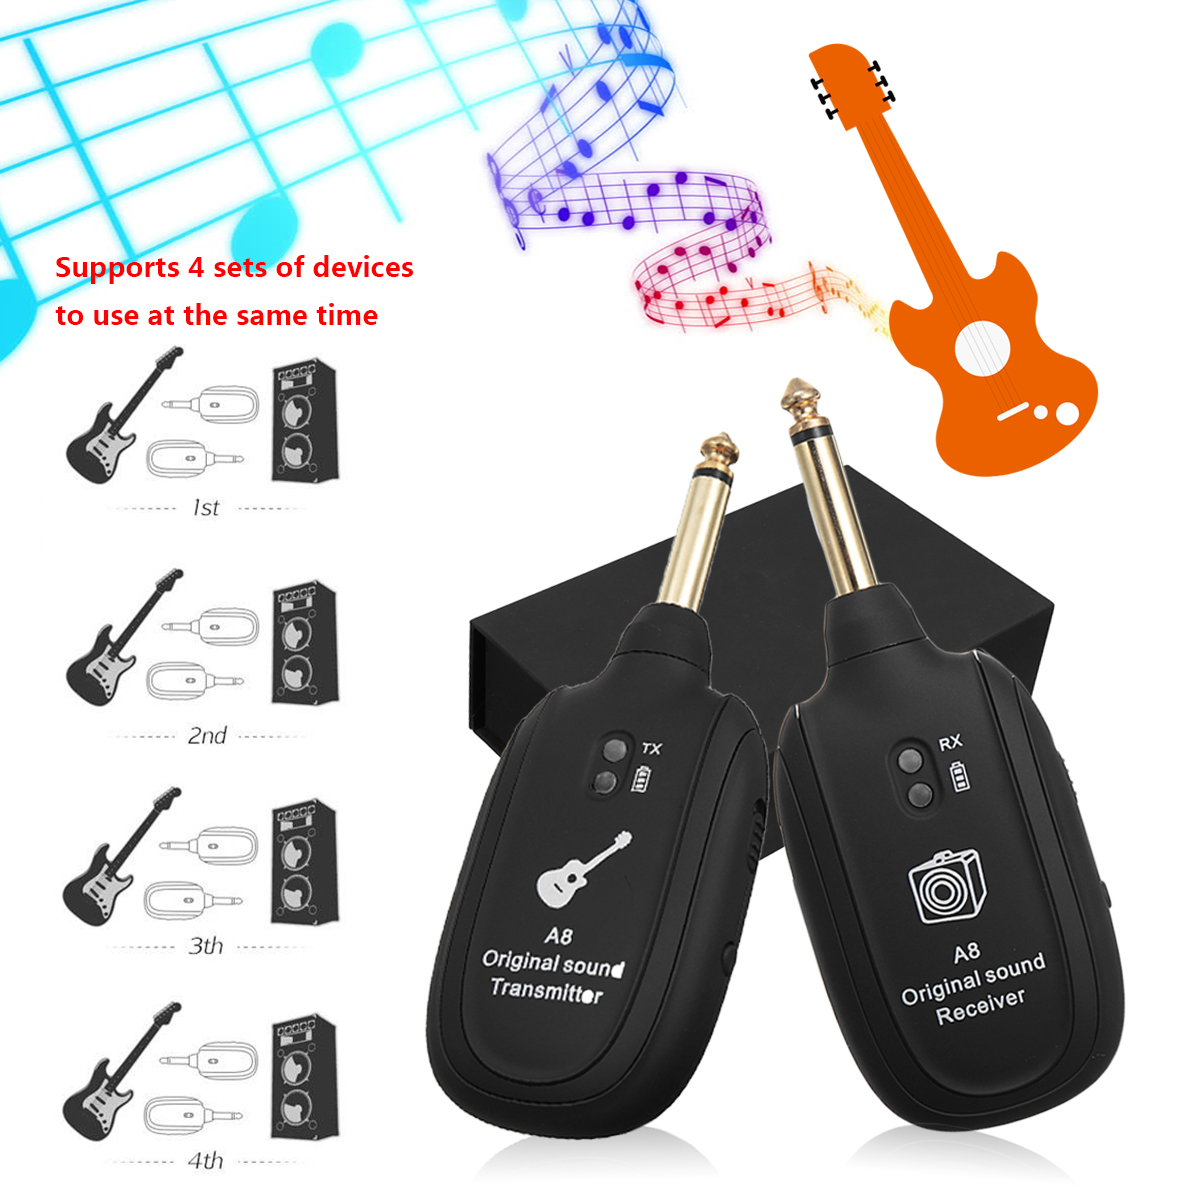 Wireless Audio Transmitter Receiver System For Guitar Violin Electric Instrument Anti-jamming Rechargeable Black Plastic Durable cw 03 micro wireless audio receive transmitter hd voice audio transmitter receiver black